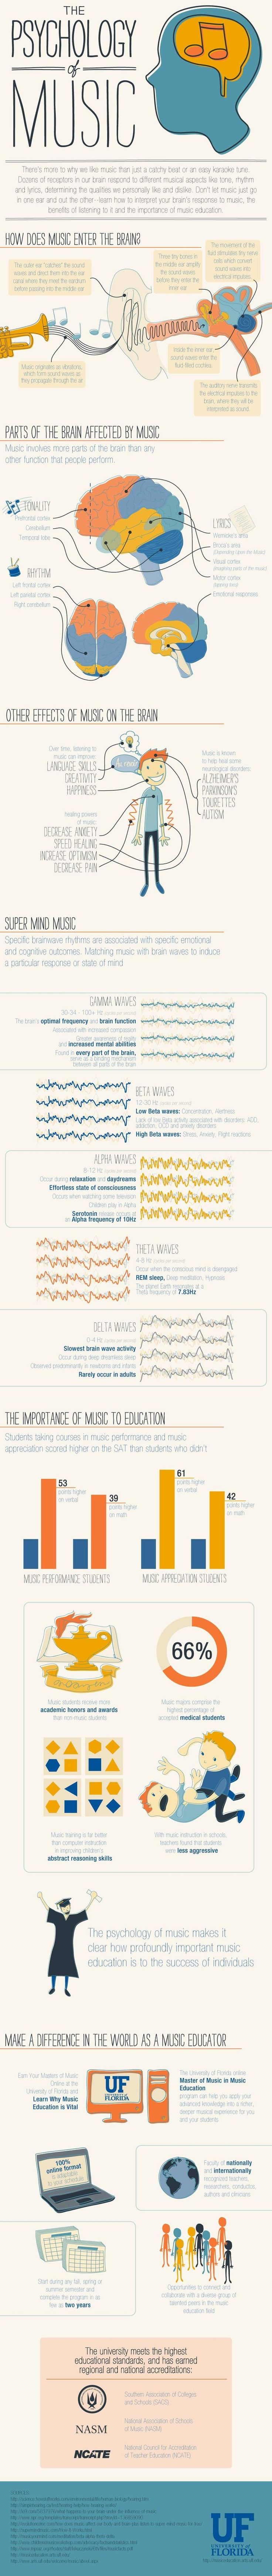 Music and Psychology - iNFOGRAPHiCs MANiA